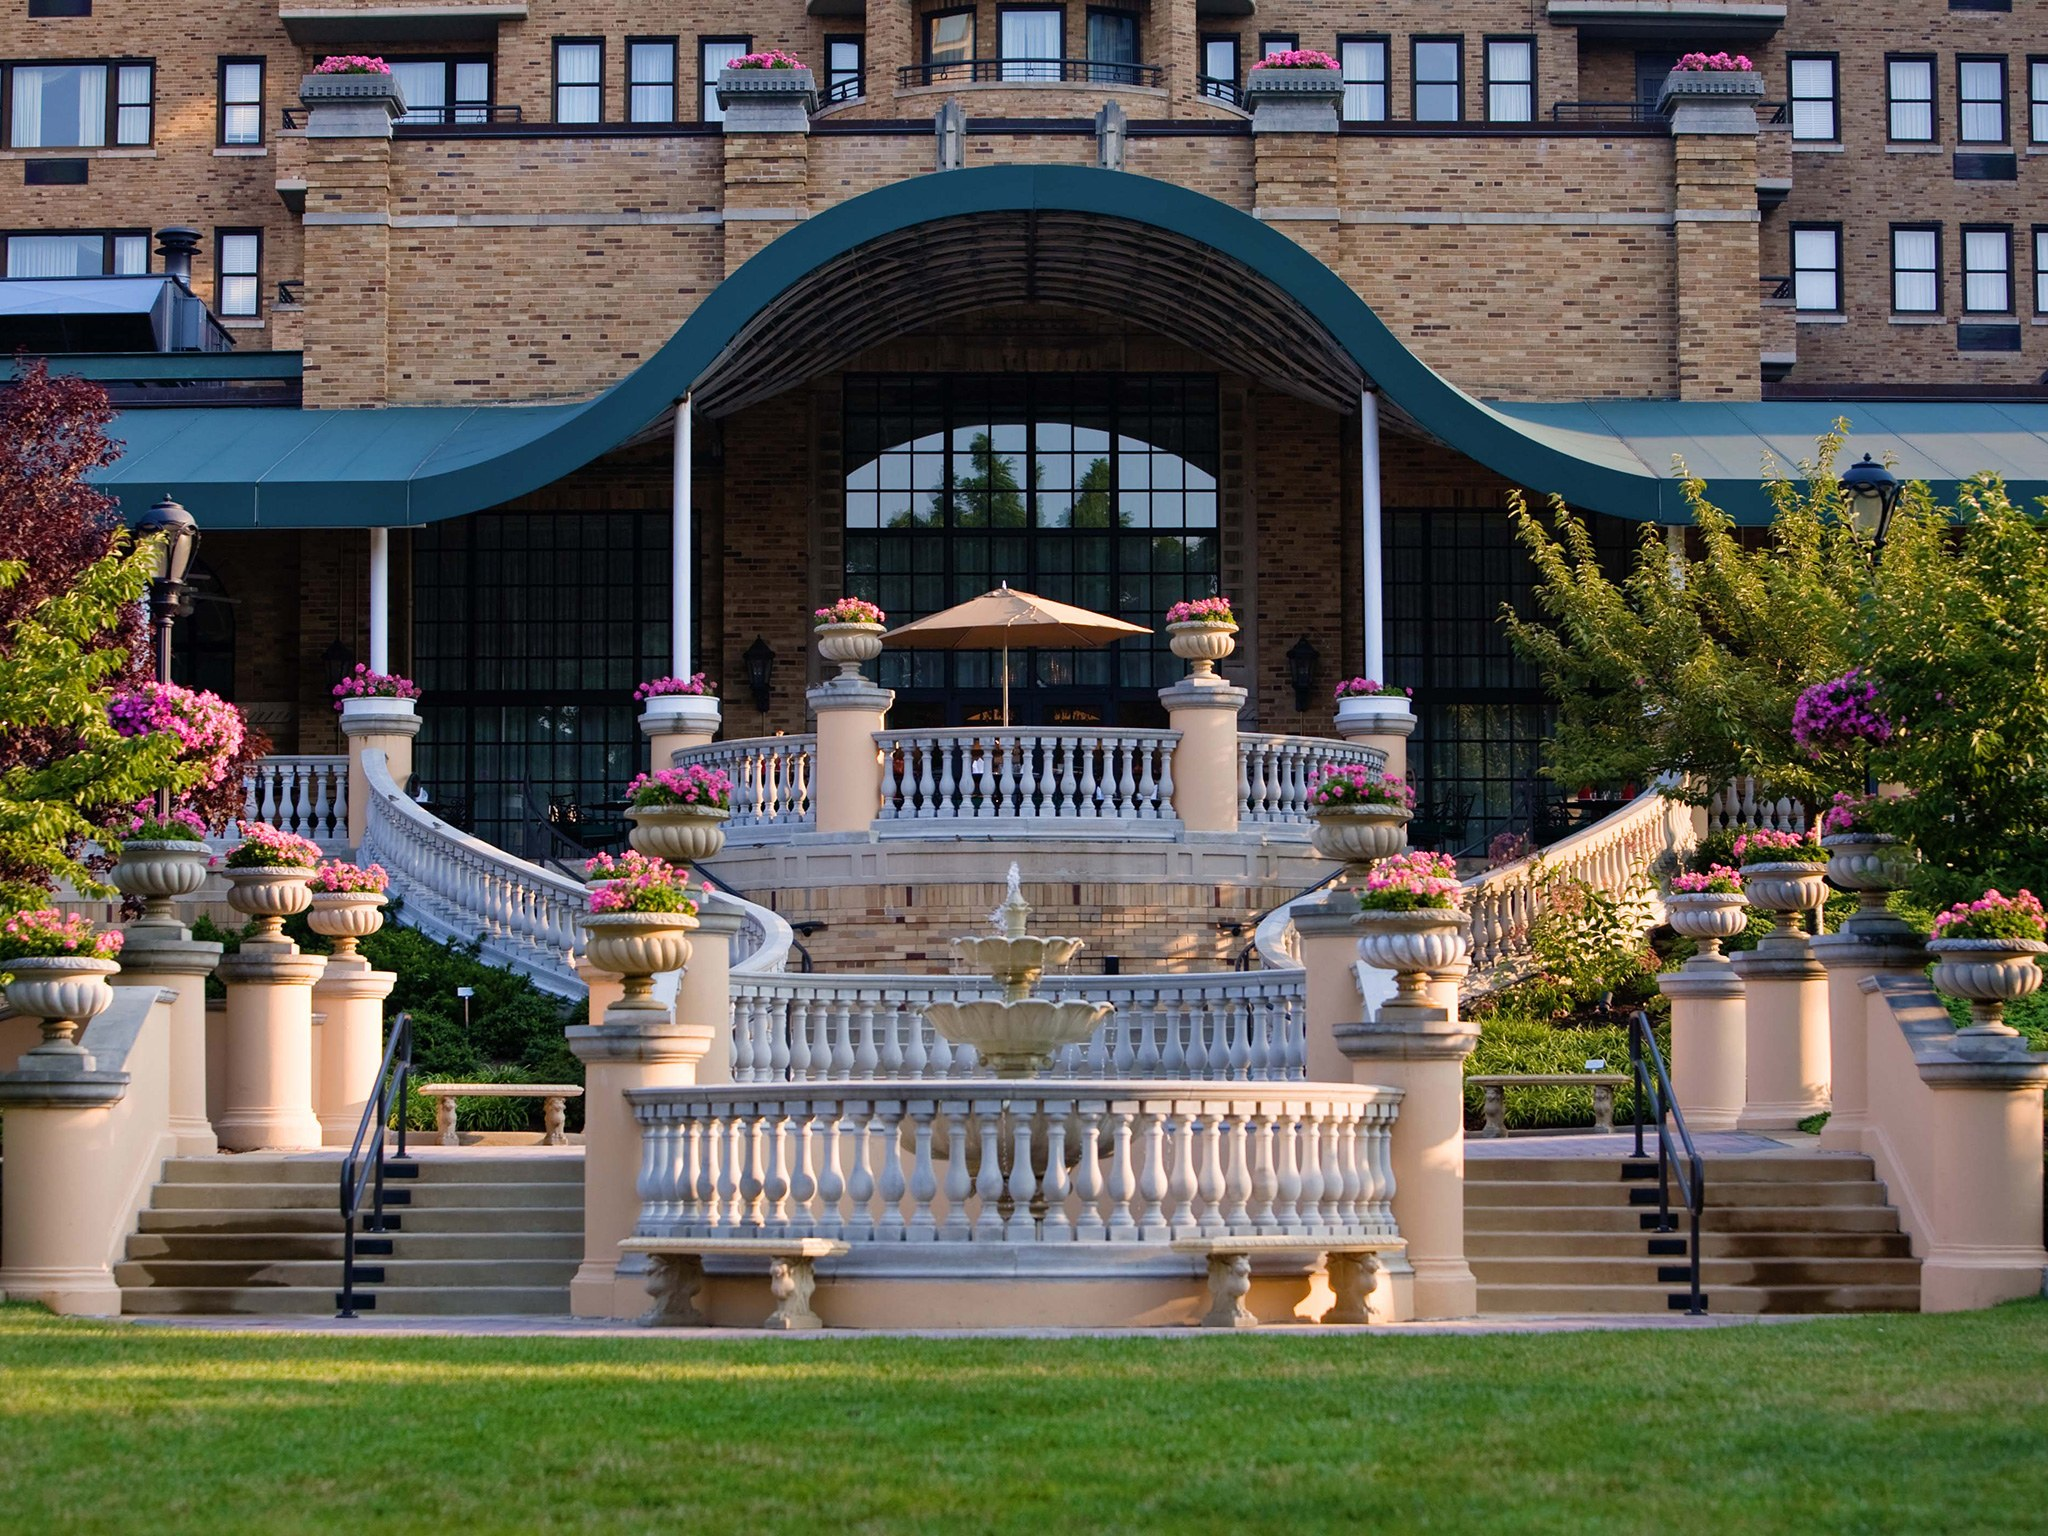 The historical Omni Shoreham Hotel in Washington, D.C.